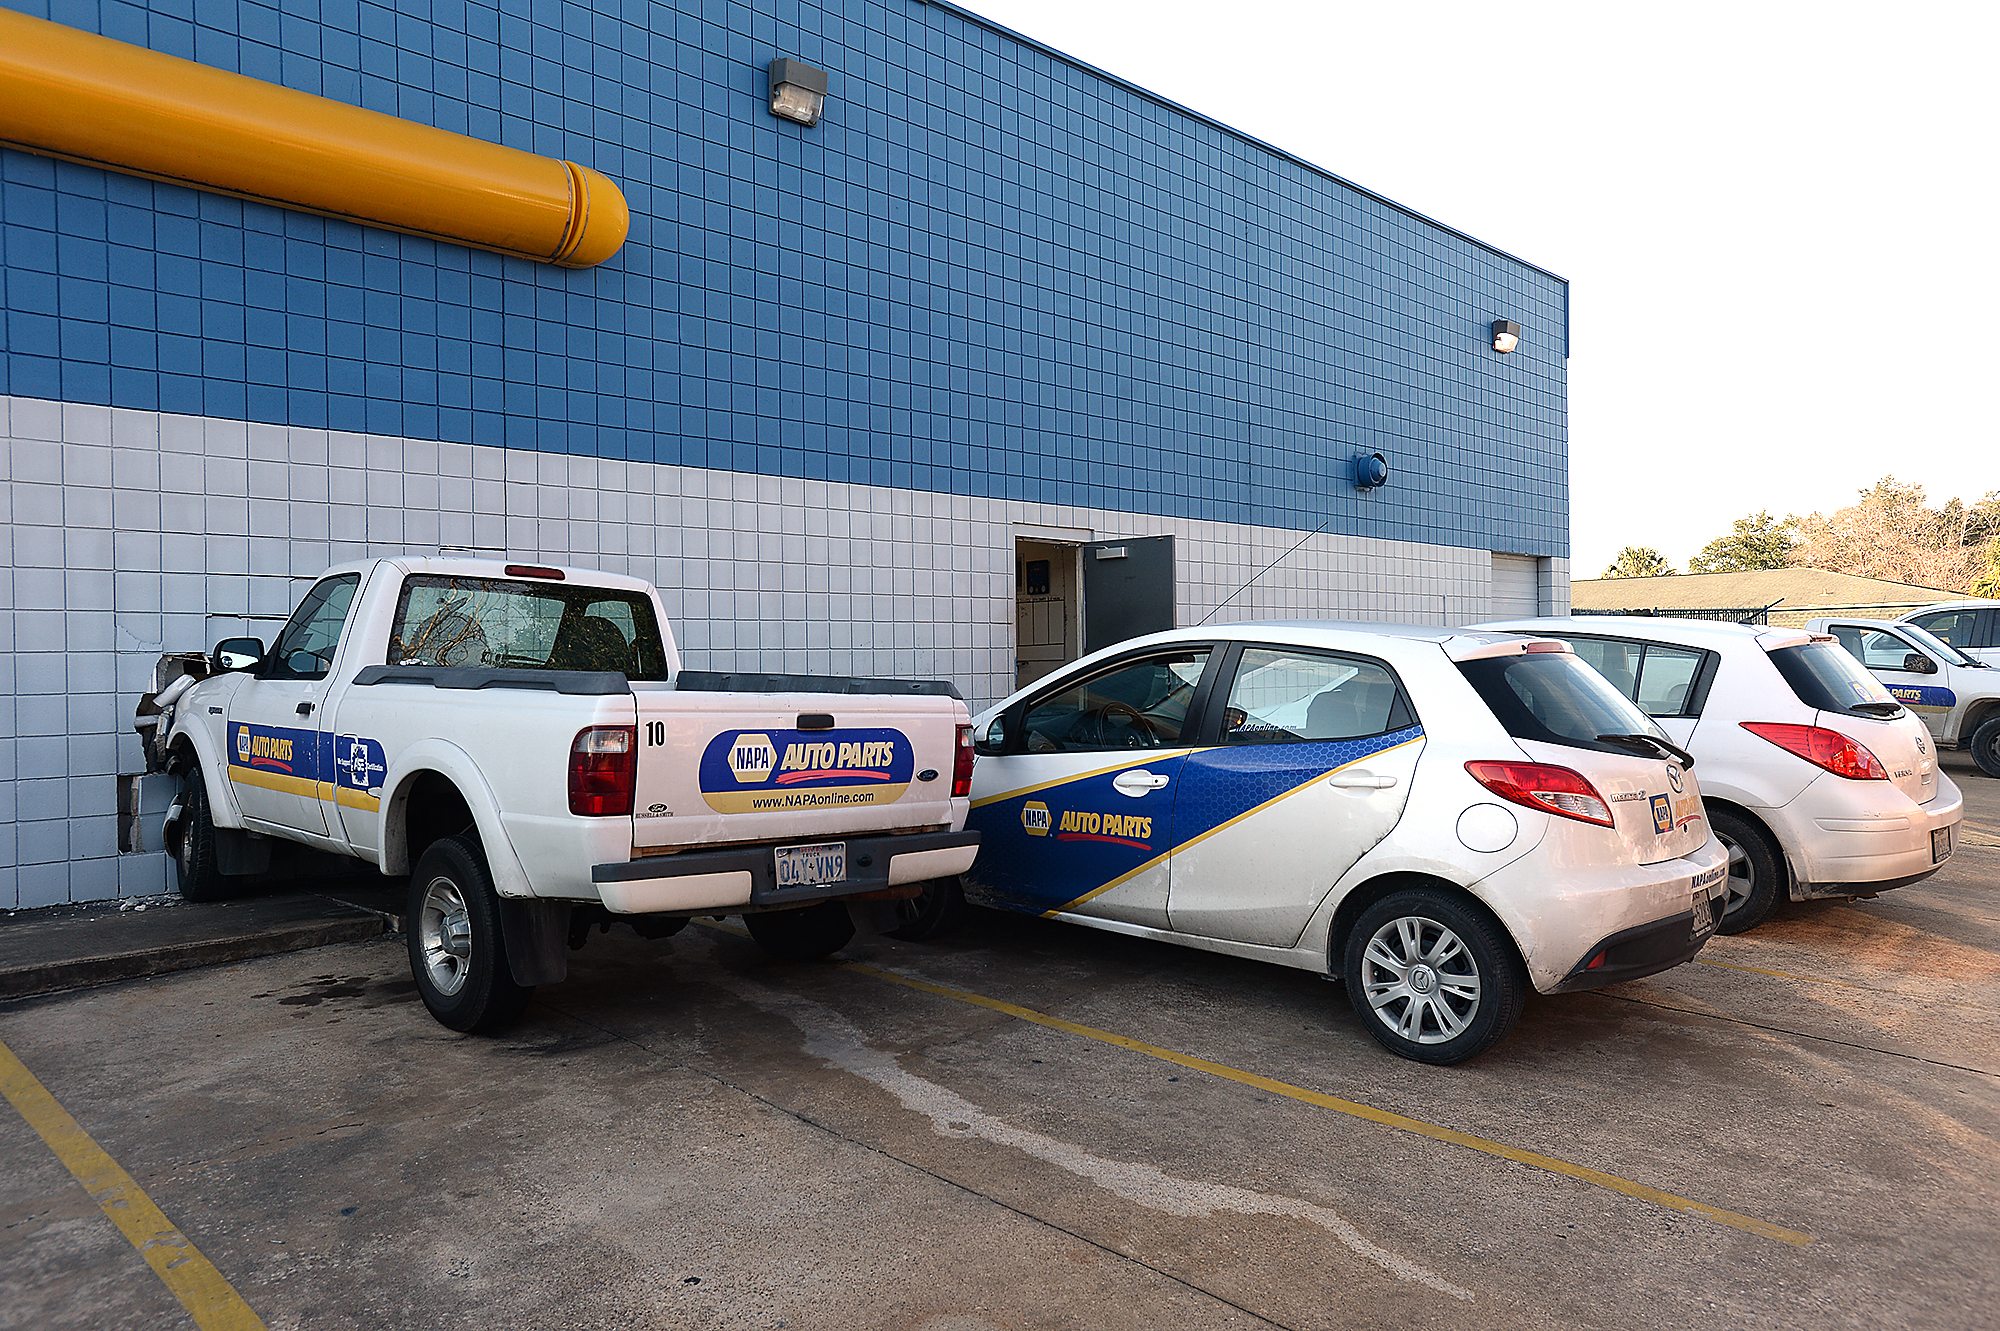 NAPA driver crashes truck into store's wall - Houston Chronicle